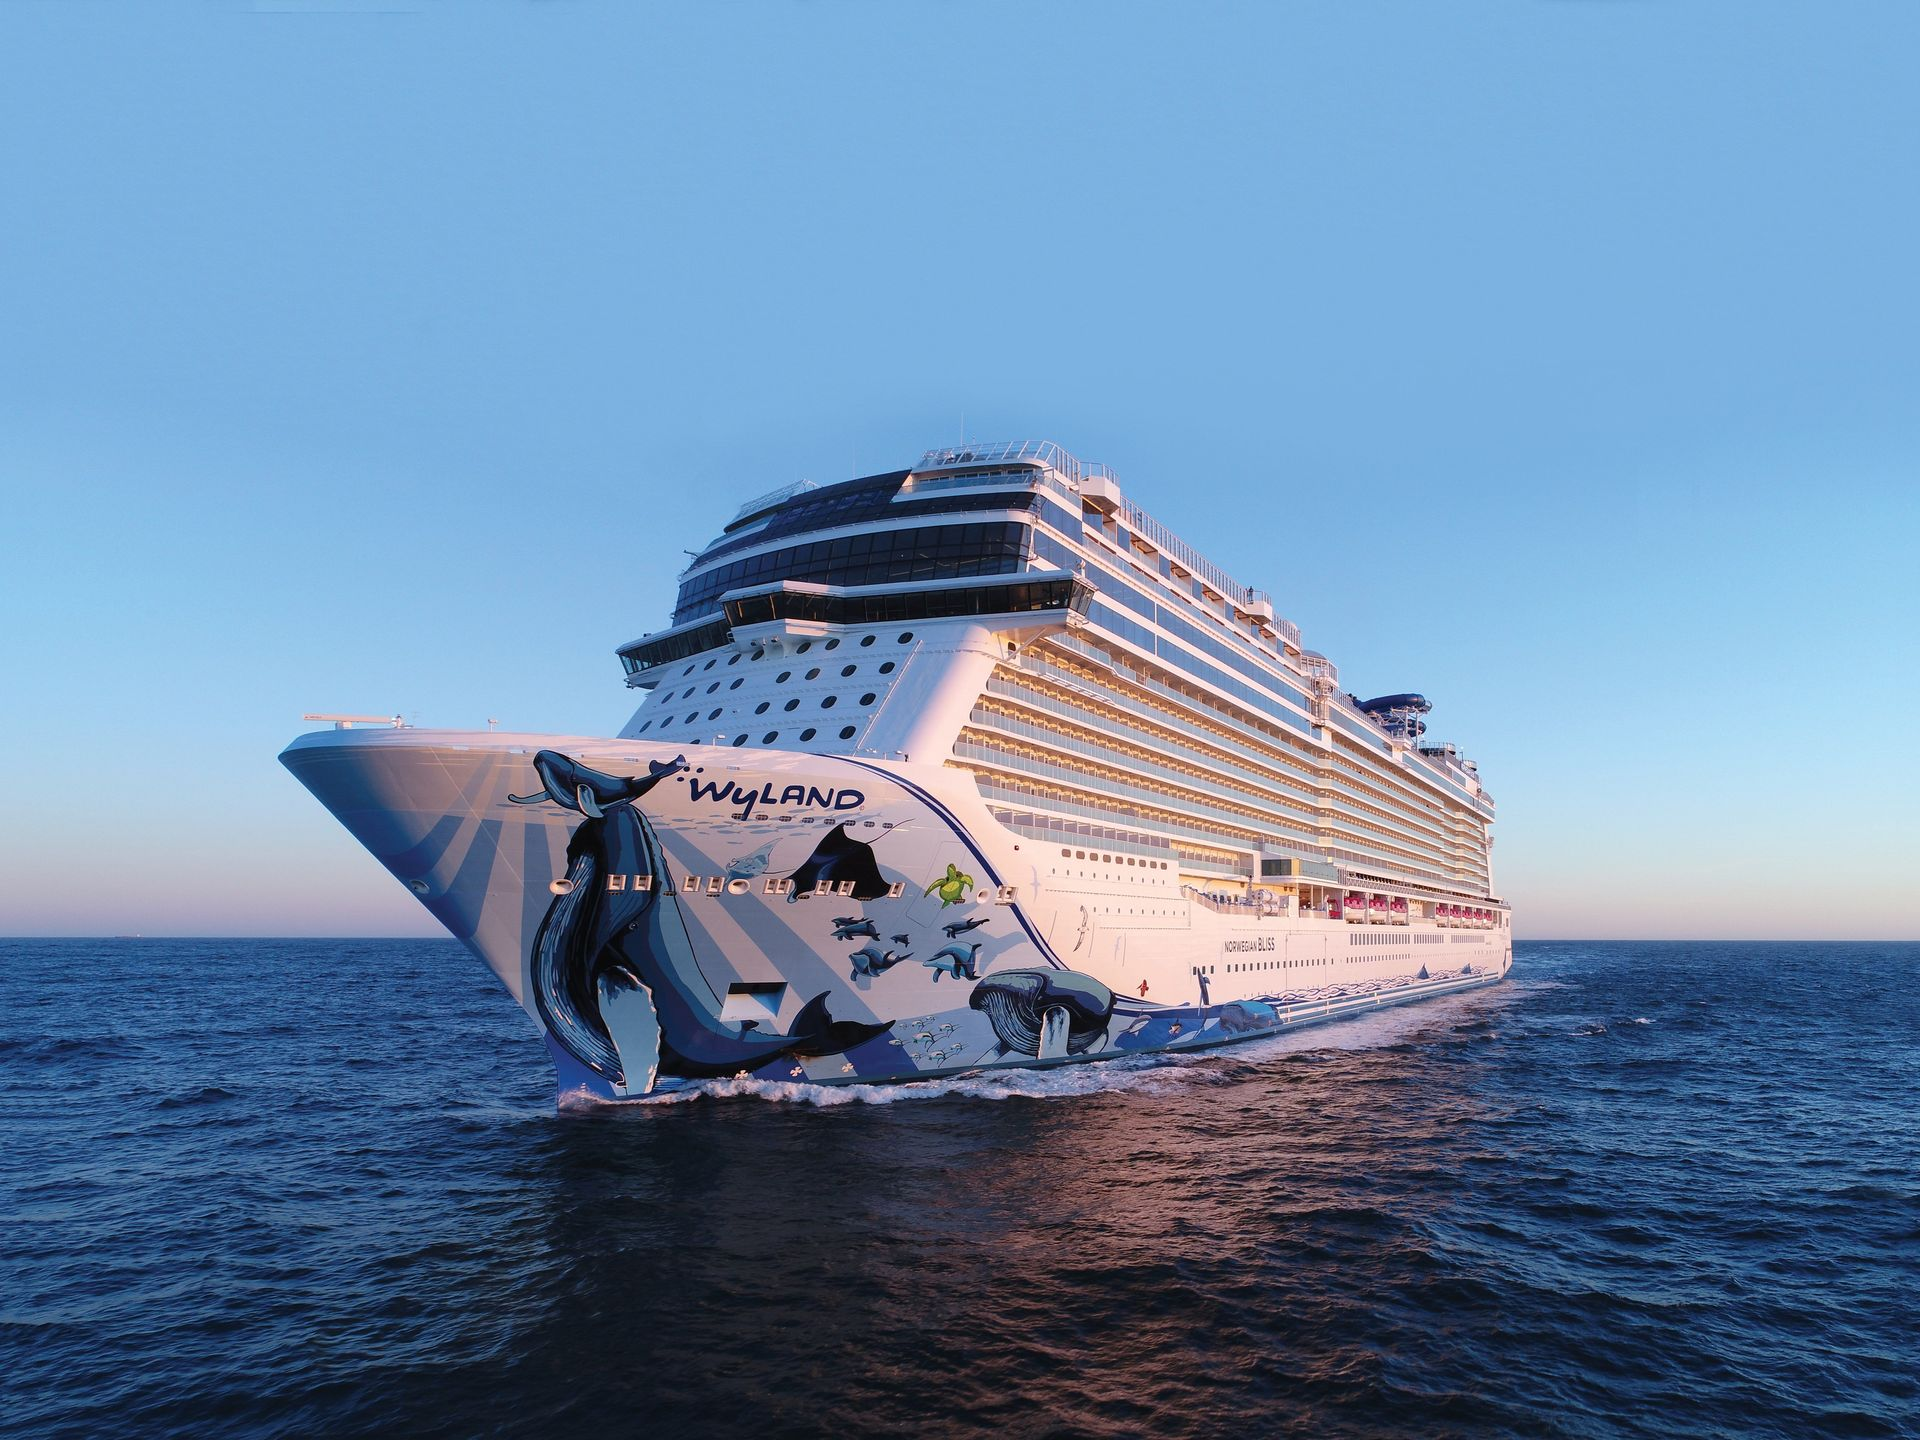 Racing on Water: This Cruise Ship Has a 1,000FT Go-Kart Track!